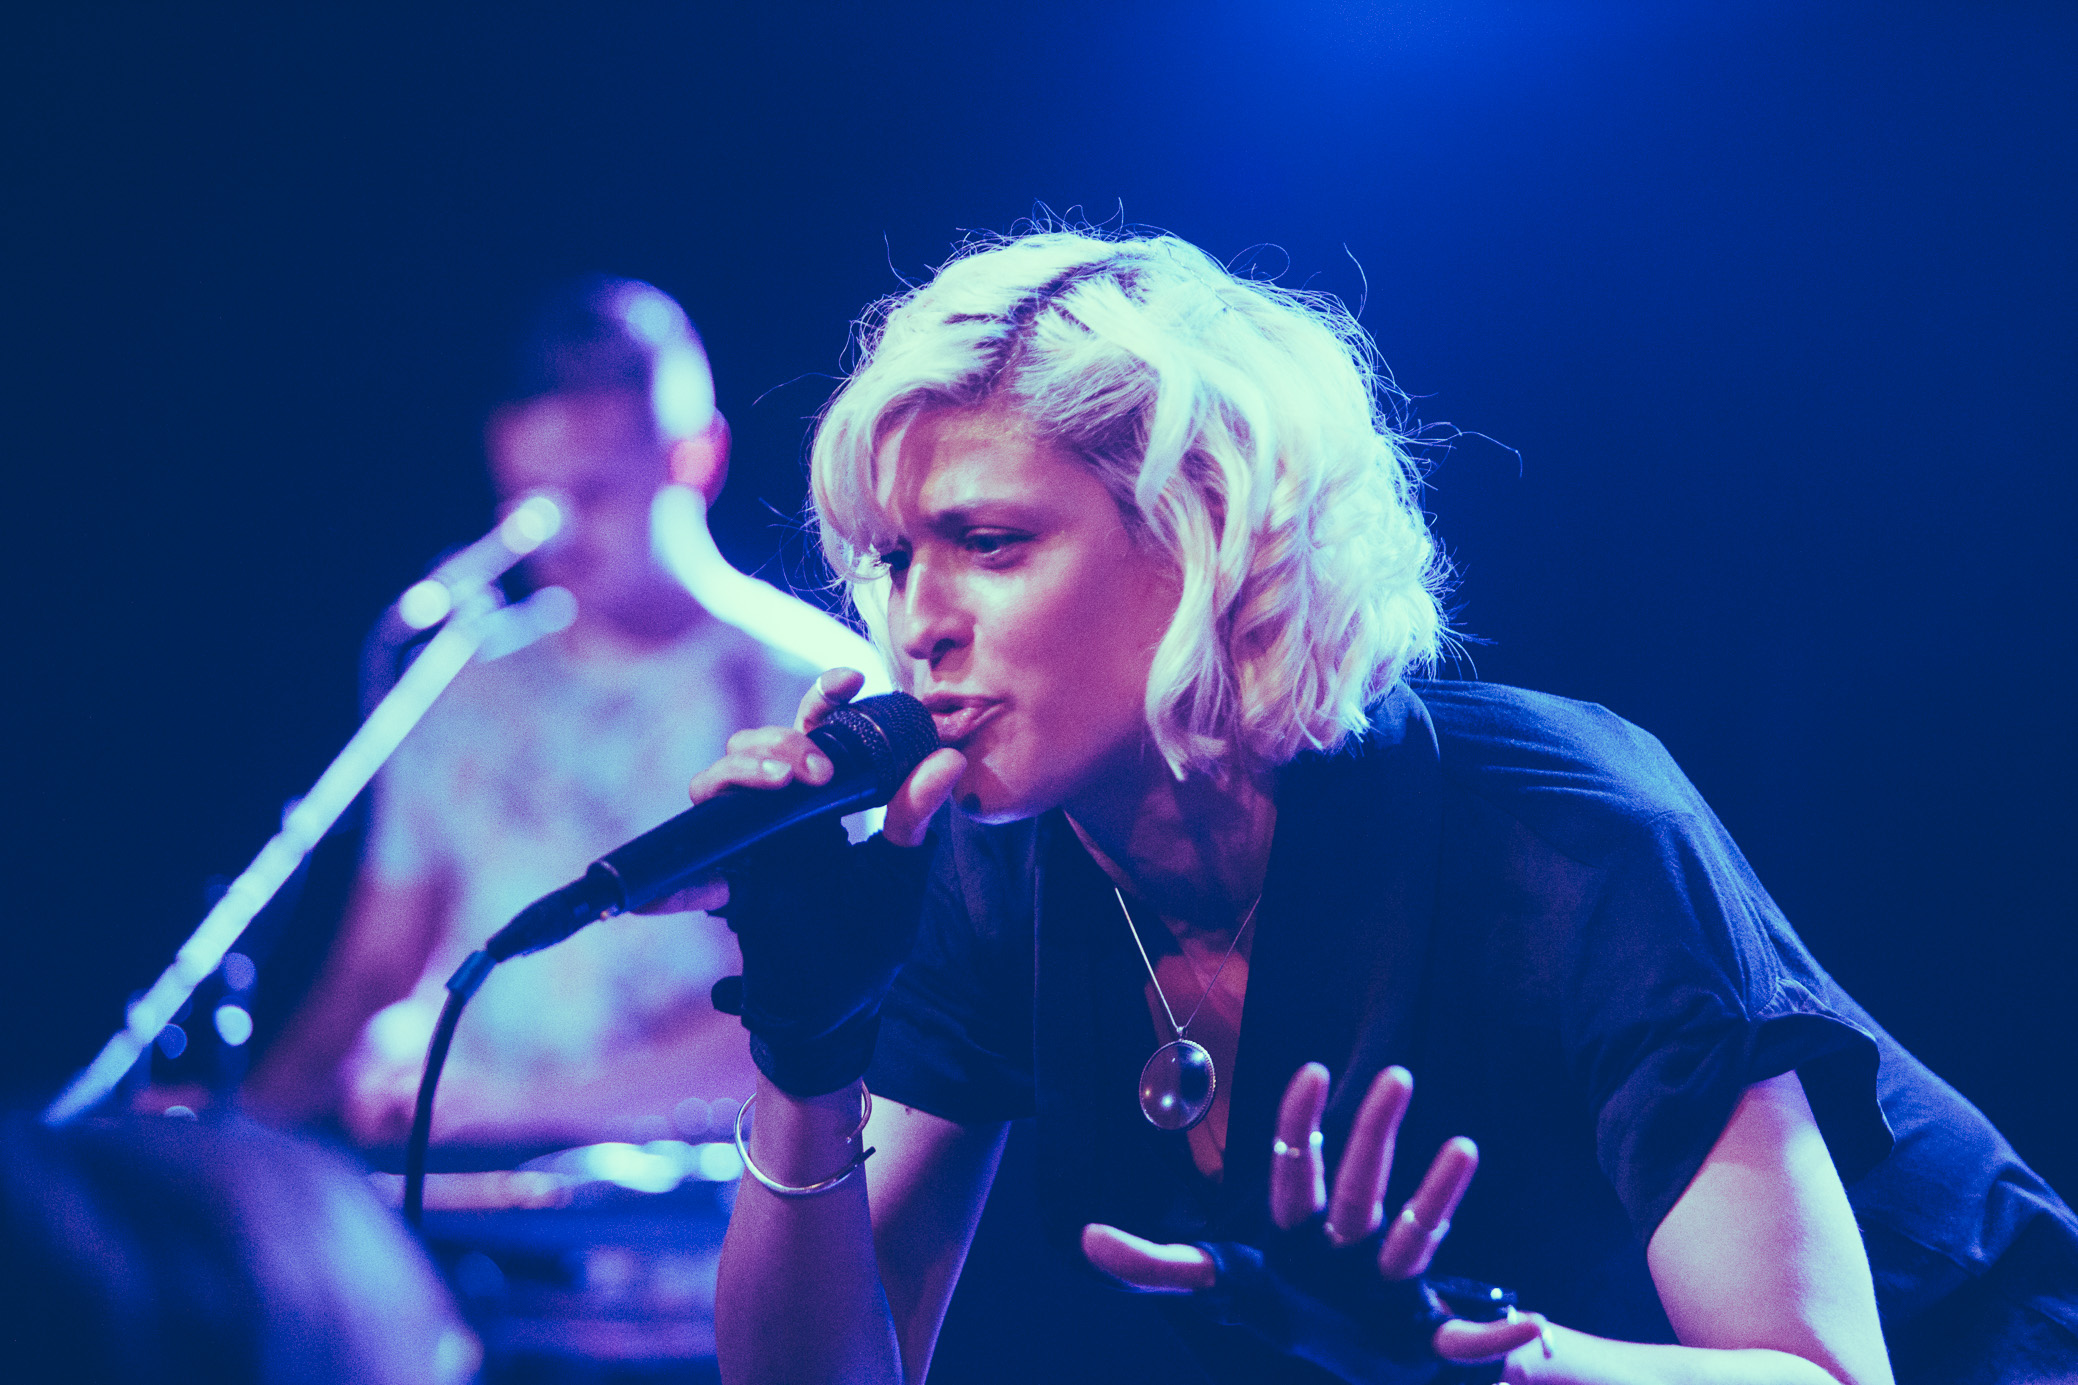 Dessa performs in concert at Saturn Birmingham in Birmingham, Alabama on June 20th, 2018. (Photo by David A. Smith/DSmithScenes)